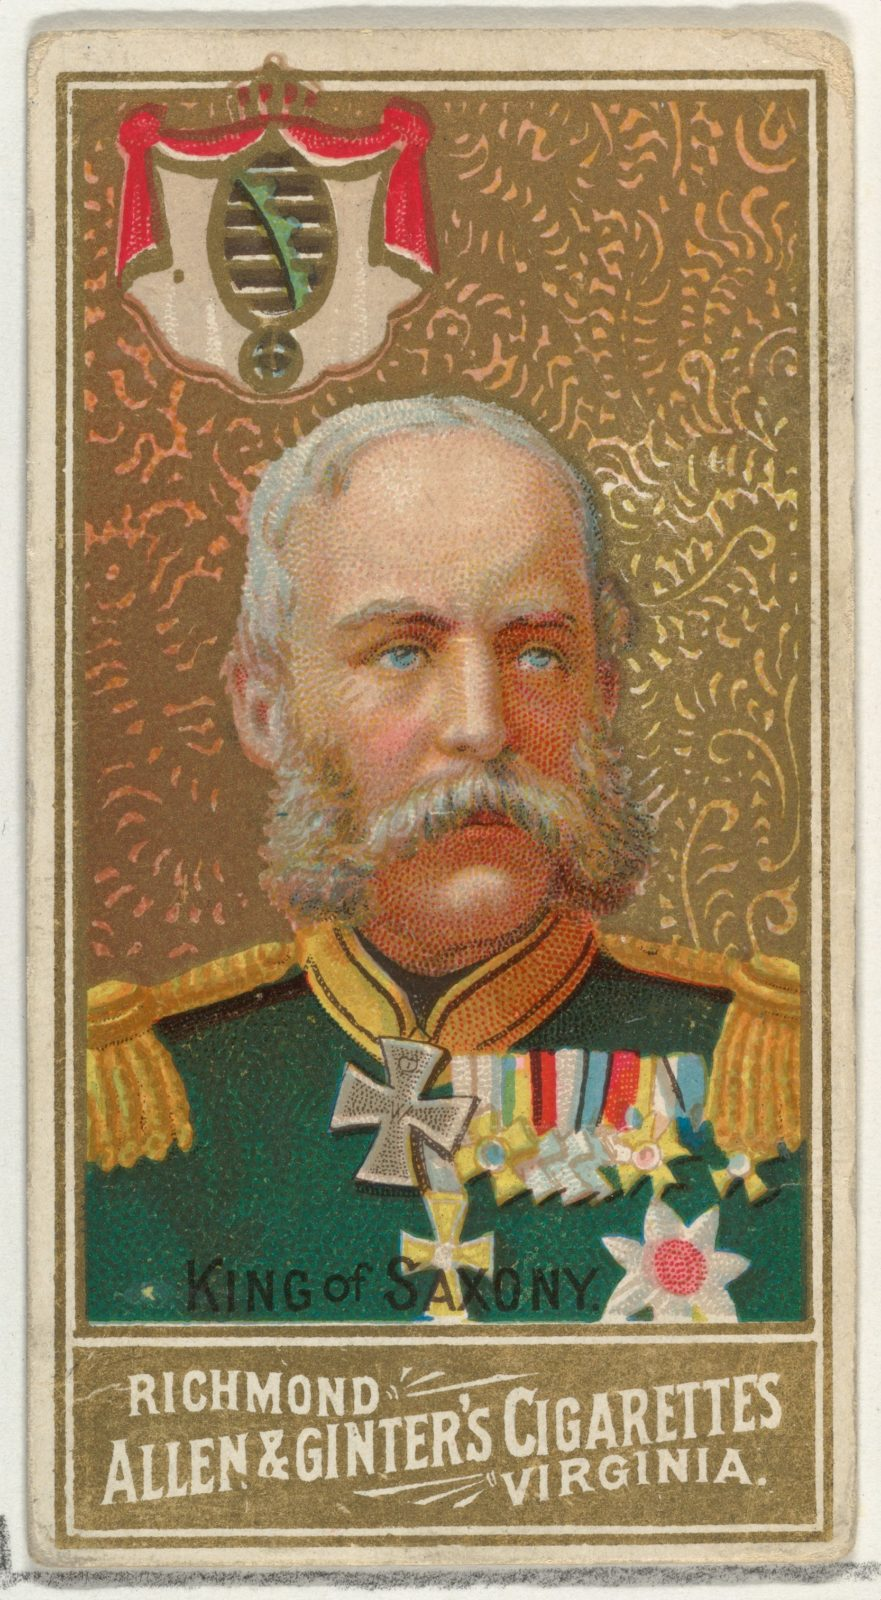 King of Saxony, from World's Sovereigns series (N34) for Allen & Ginter Cigarettes